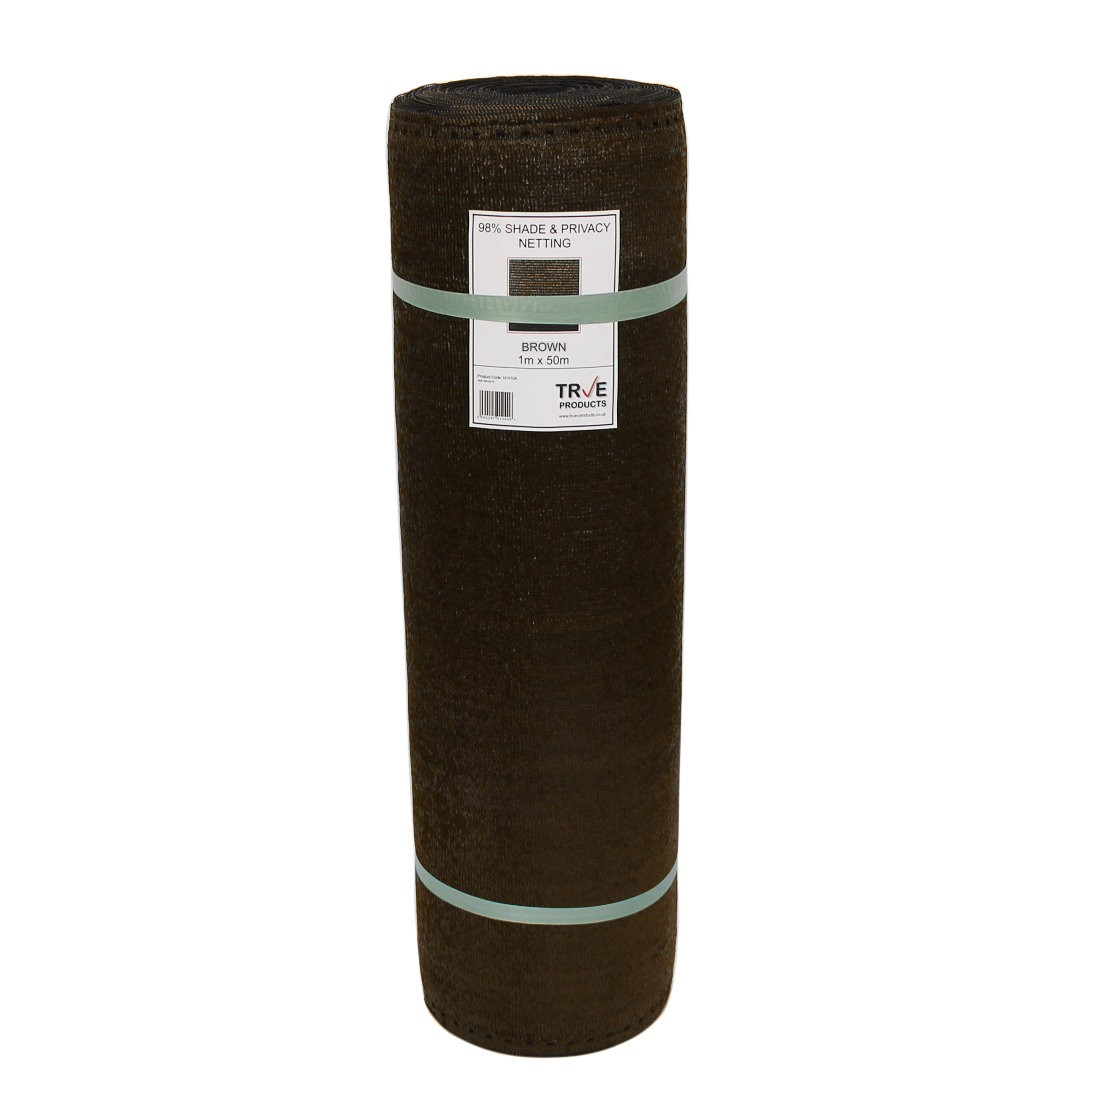 98 brown shade netting for privacy screening 1m or for Fenetre 2m x 1m